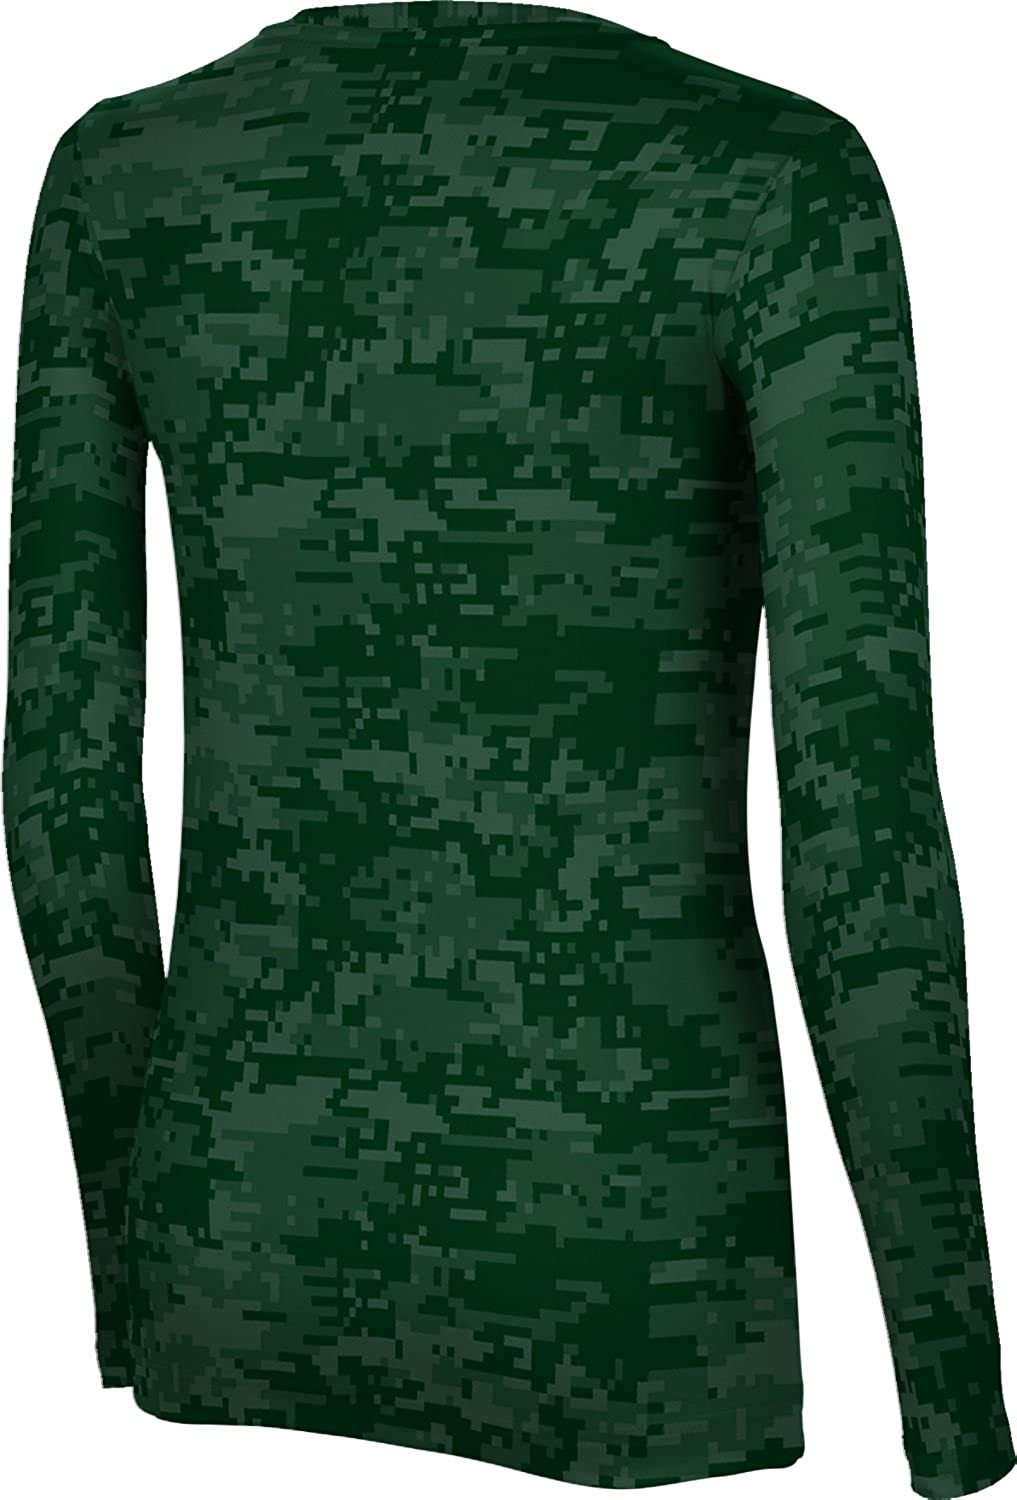 ProSphere Baylor University Womens Long Sleeve Tee Digi Camo